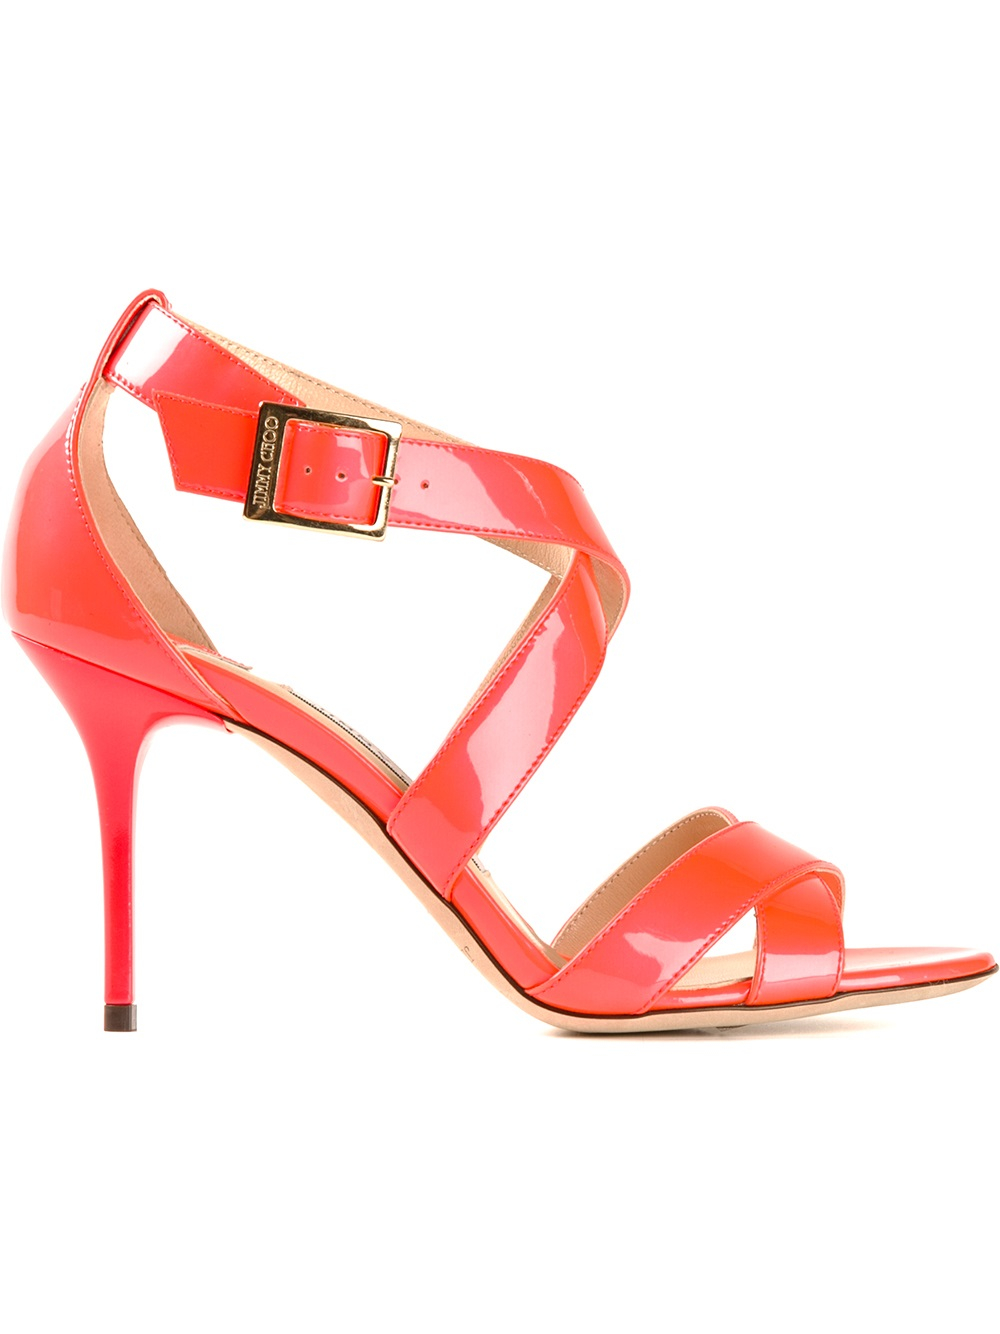 2e3b9547c1e Gallery. Previously sold at  Farfetch · Women s Jimmy Choo Louise ...